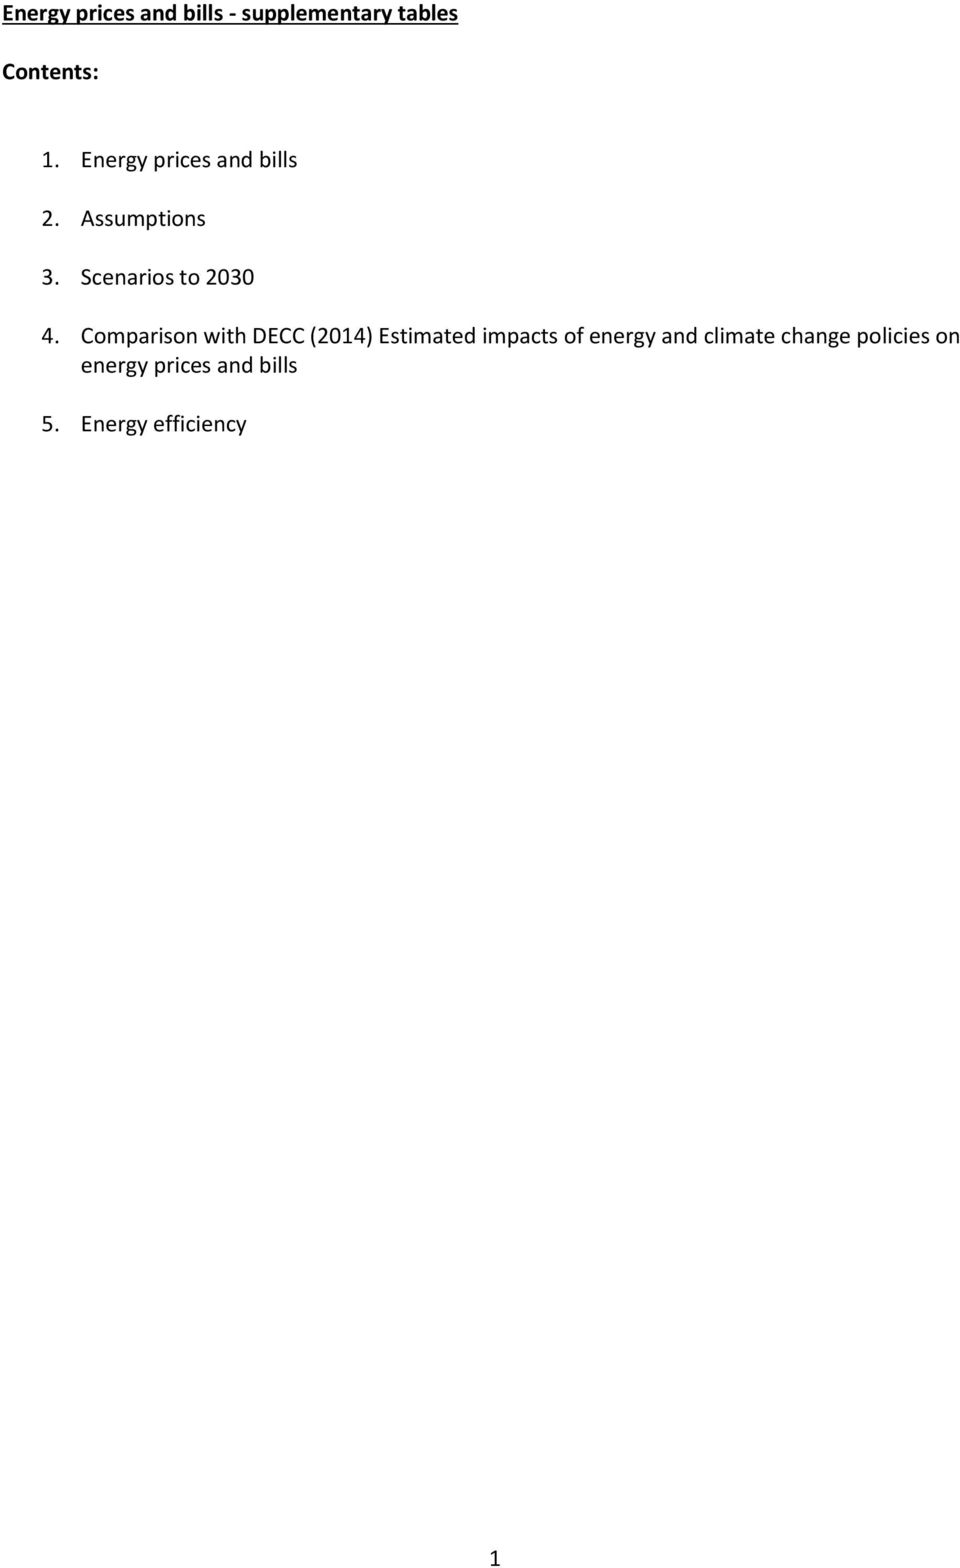 Comparison with DECC (2014) Estimated impacts of energy and